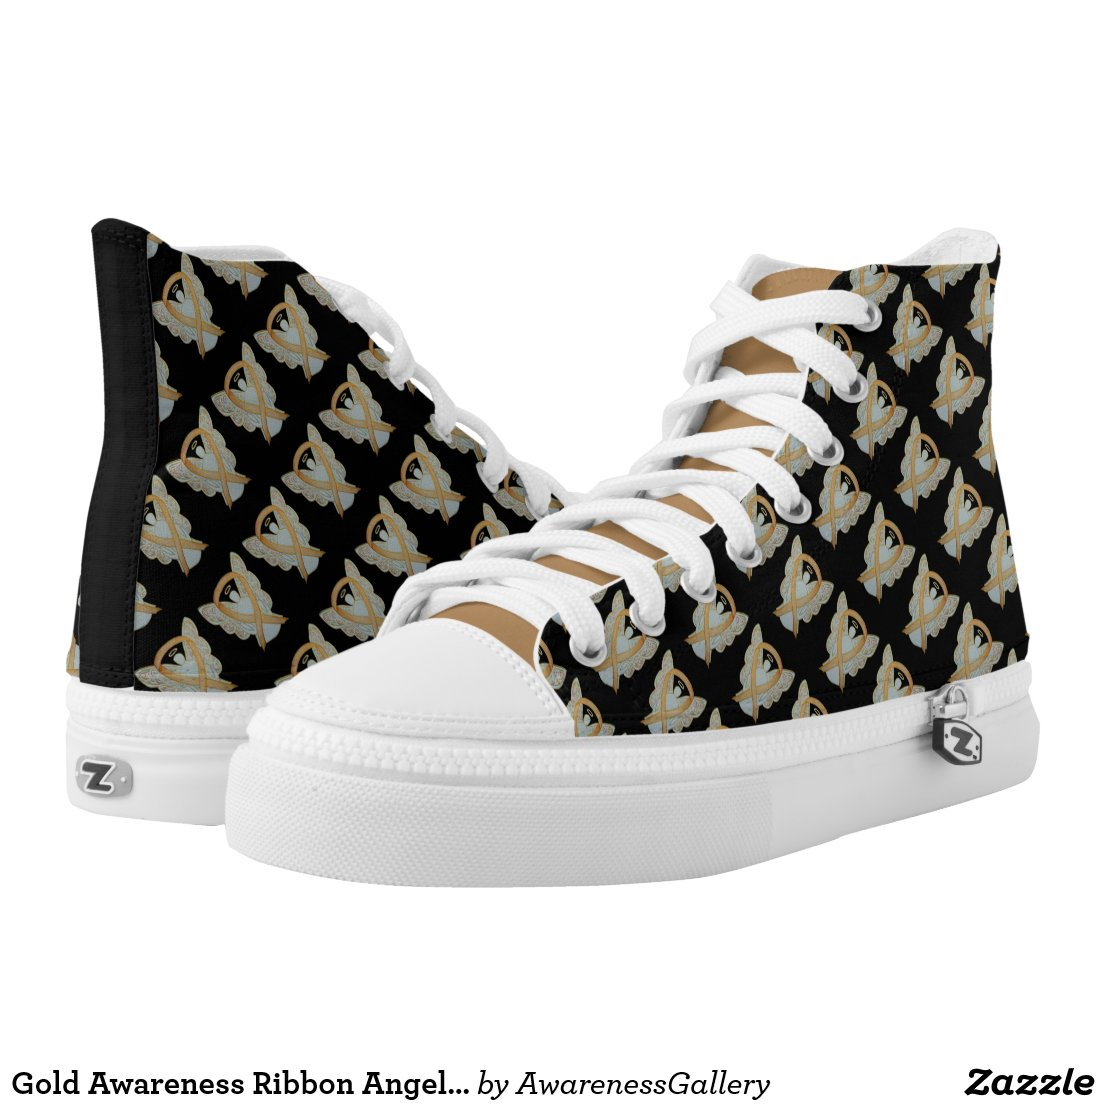 Gold Awareness Ribbon Angel Custom High Tops